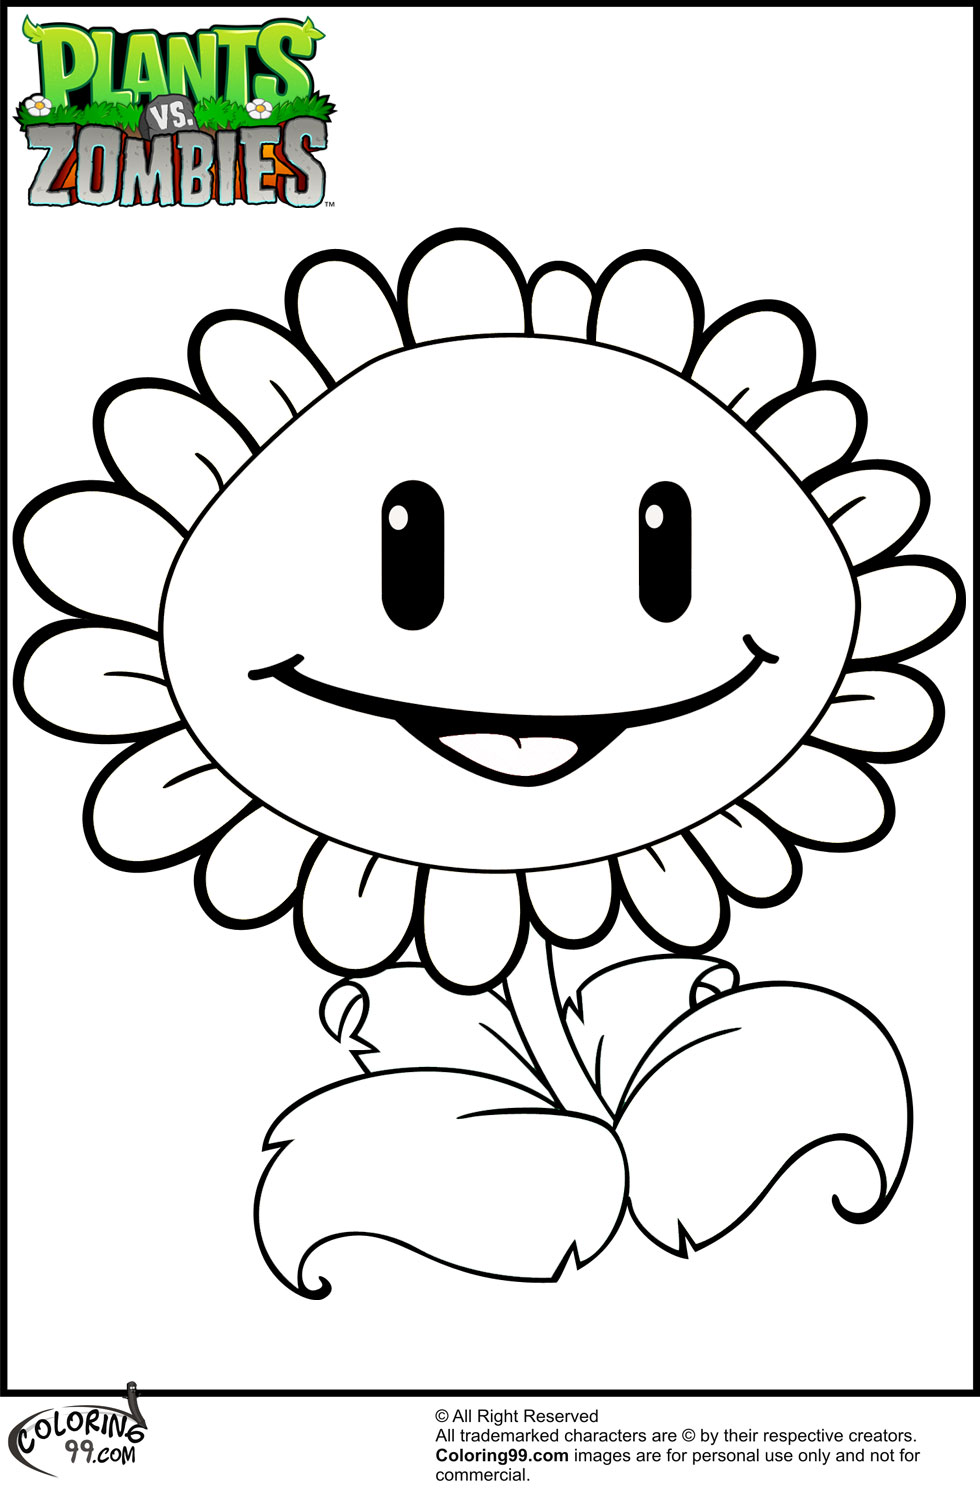 plants-vs-zombies coloring page to print,printable,coloring pages